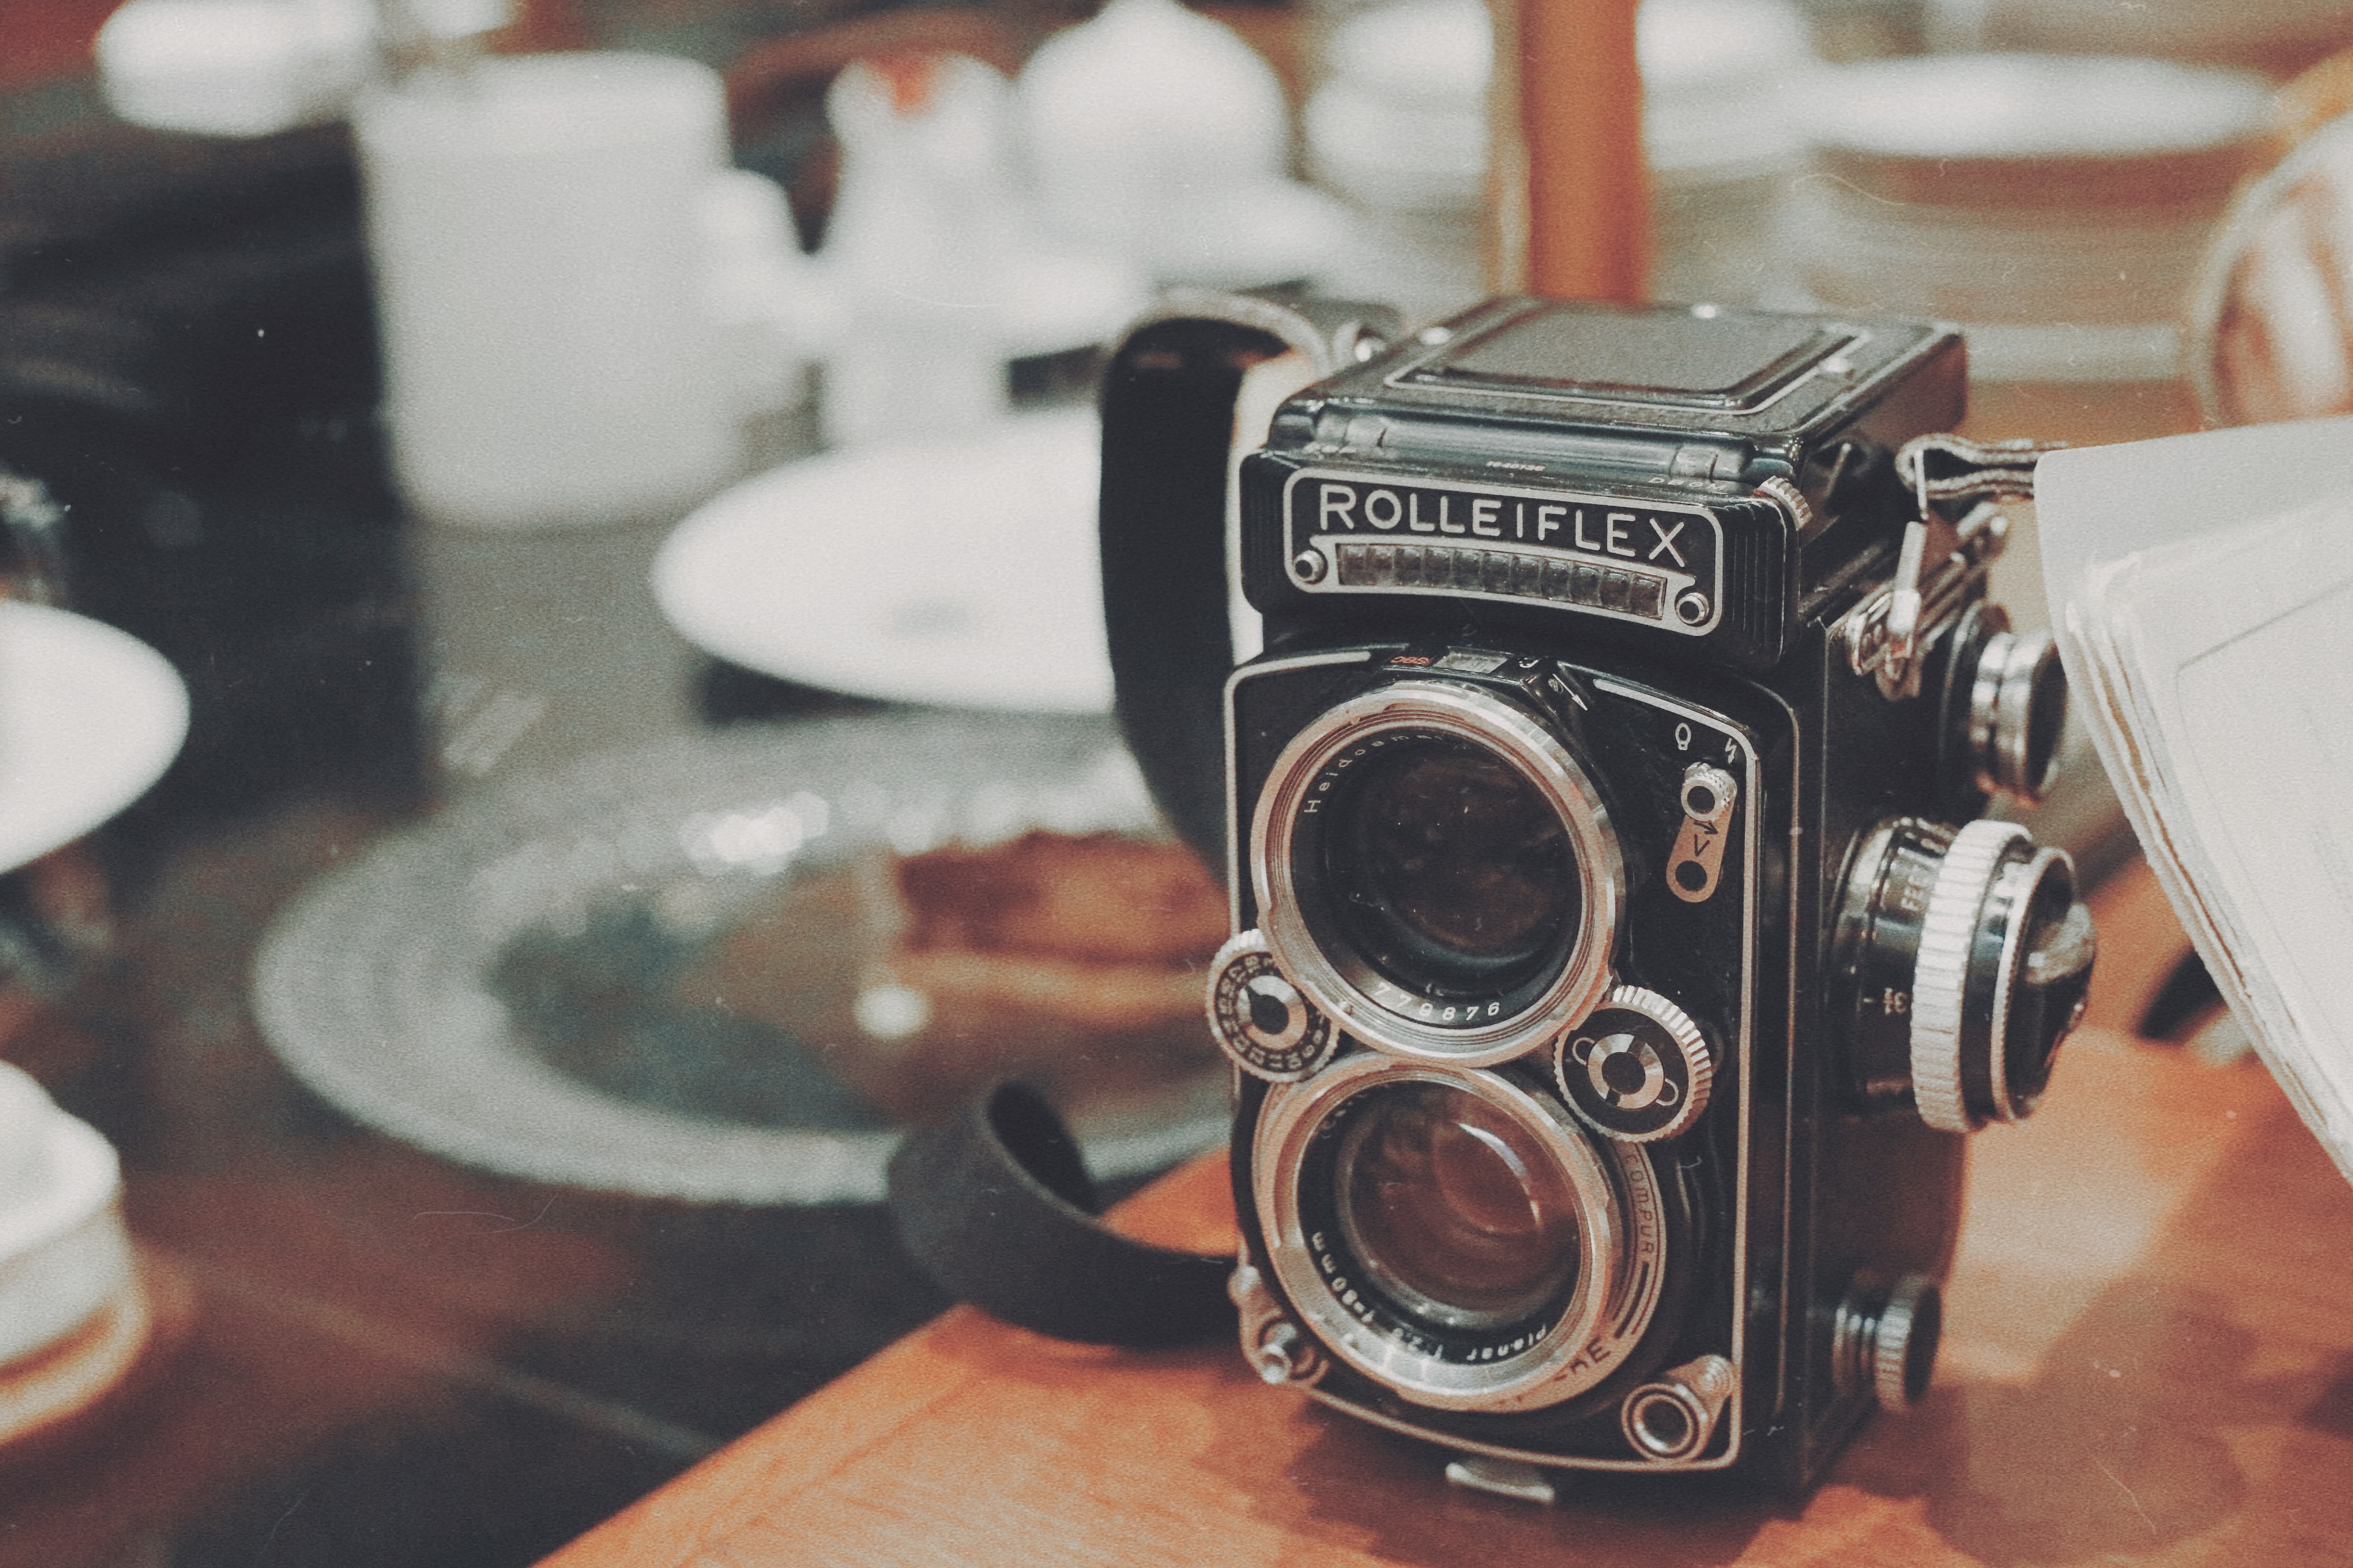 Vintage Rolleiflex camera with strap on glass table with cups